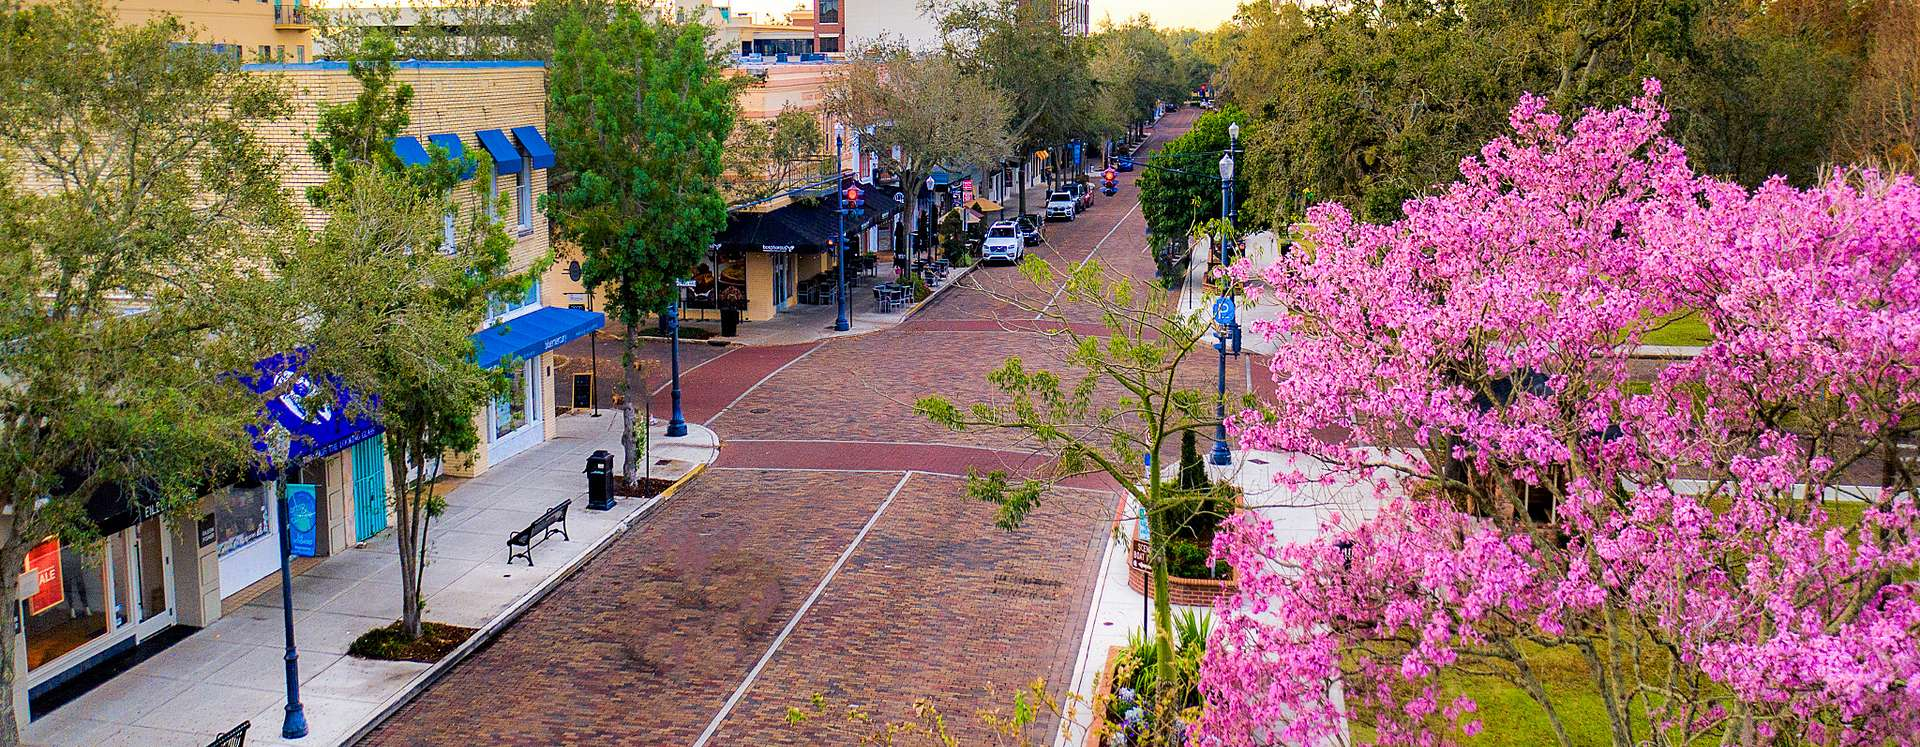 An aerial view of the stores and brick-paved streets in the city of Winter Park.